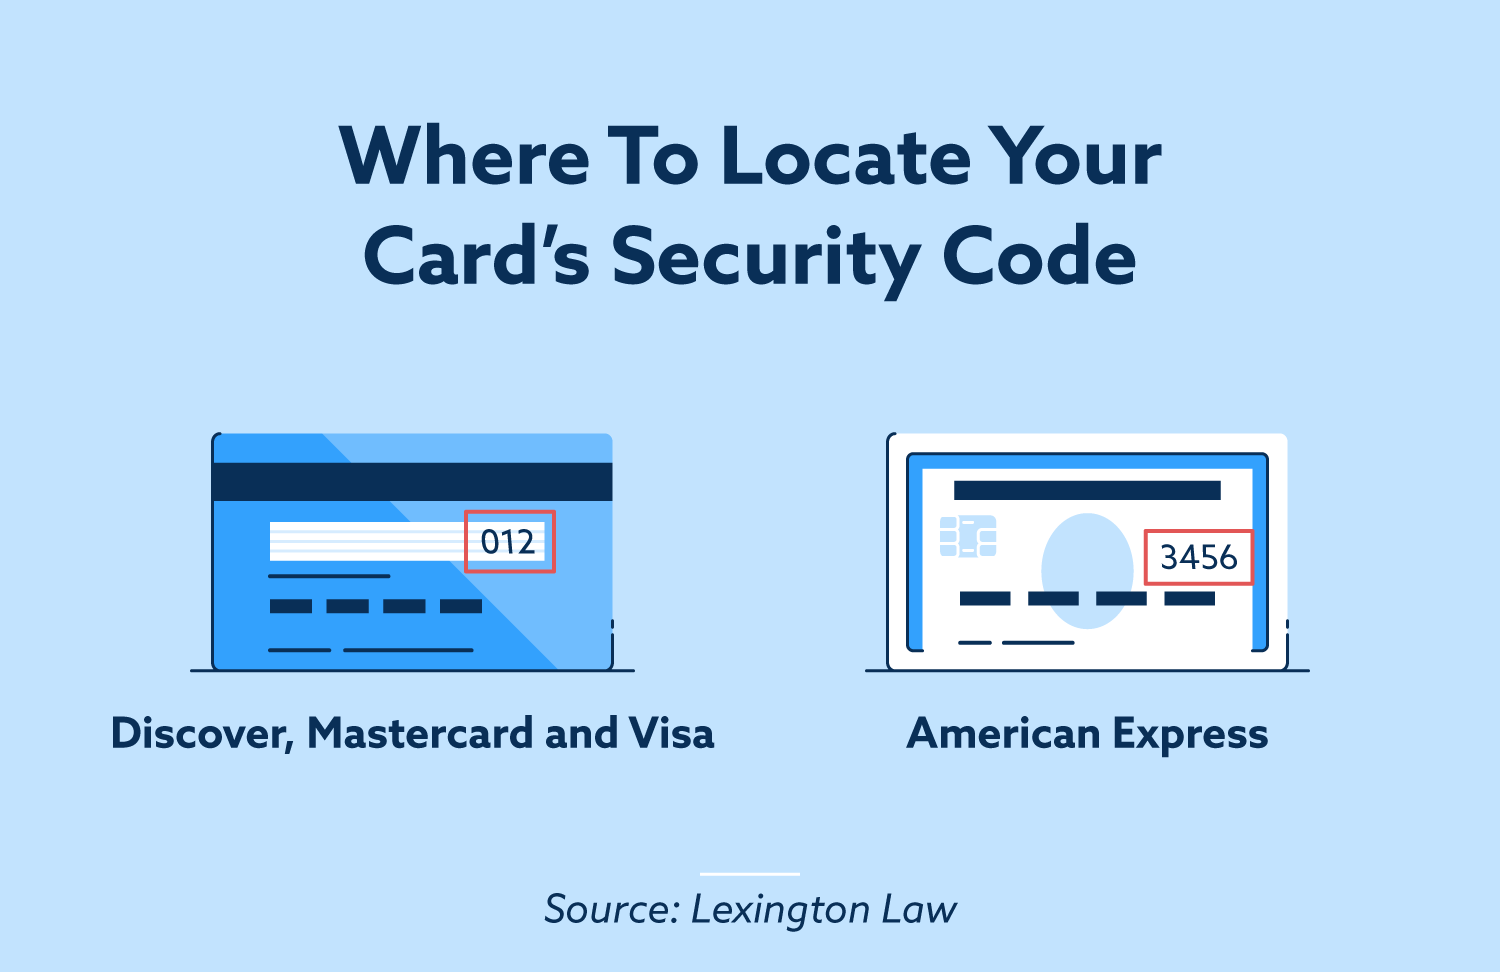 Where to locate your card's security code.